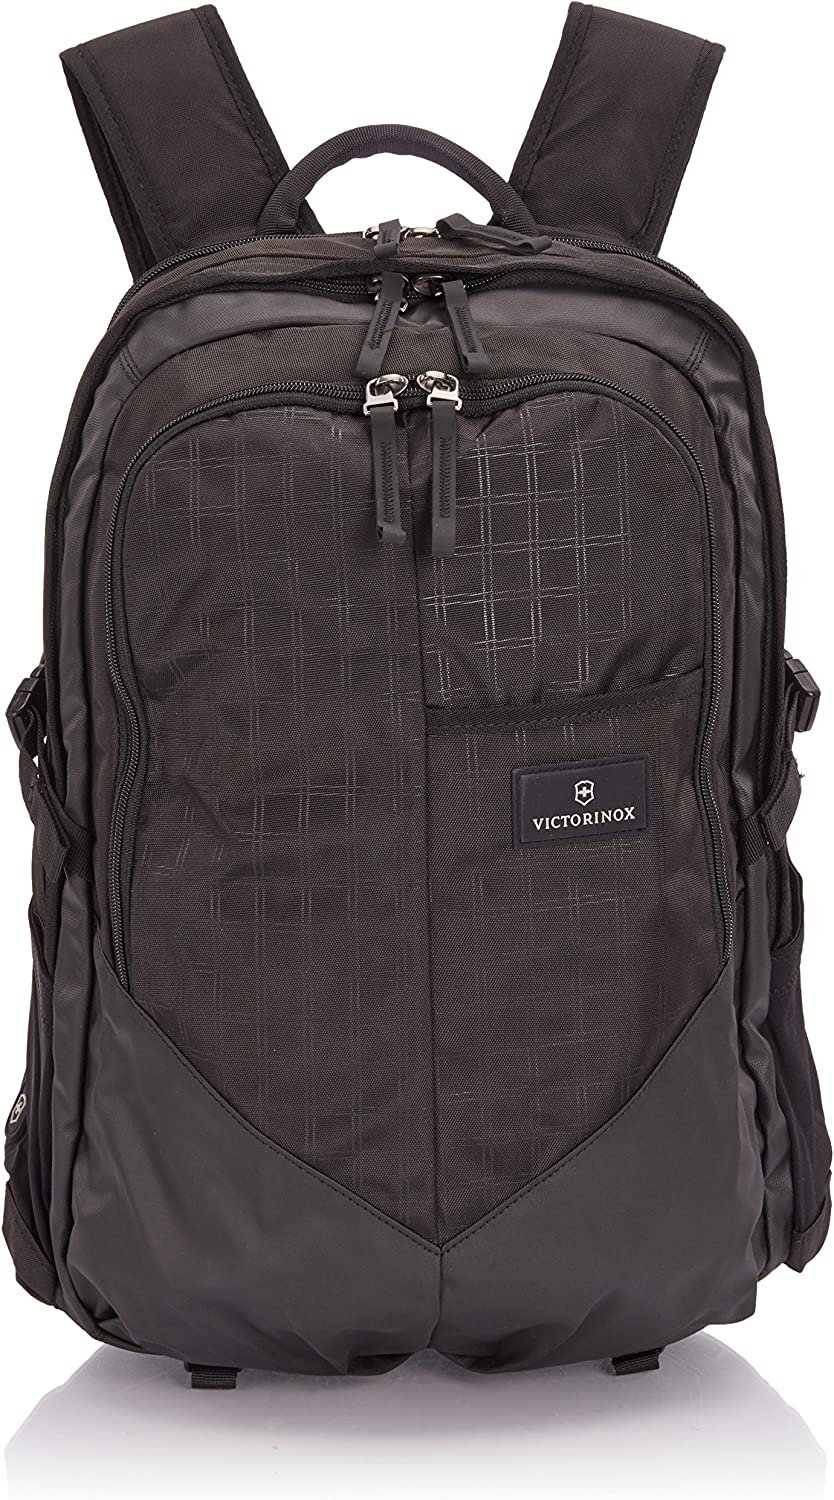 Victorinox Altmont 3.0 Deluxe Laptop Backpack with Tablet Pocket, Black, 19-inch